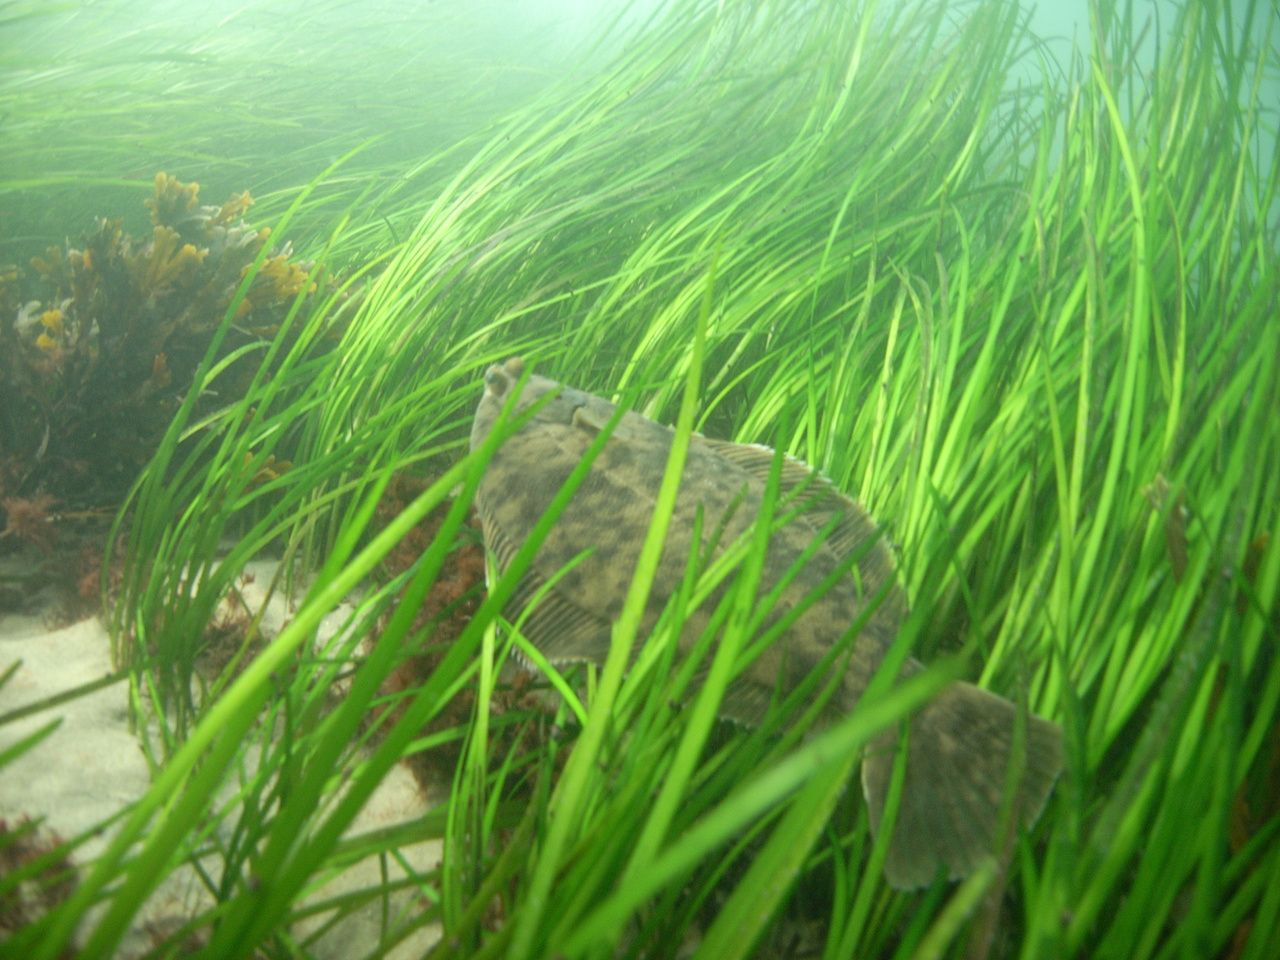 Sea grass with fish